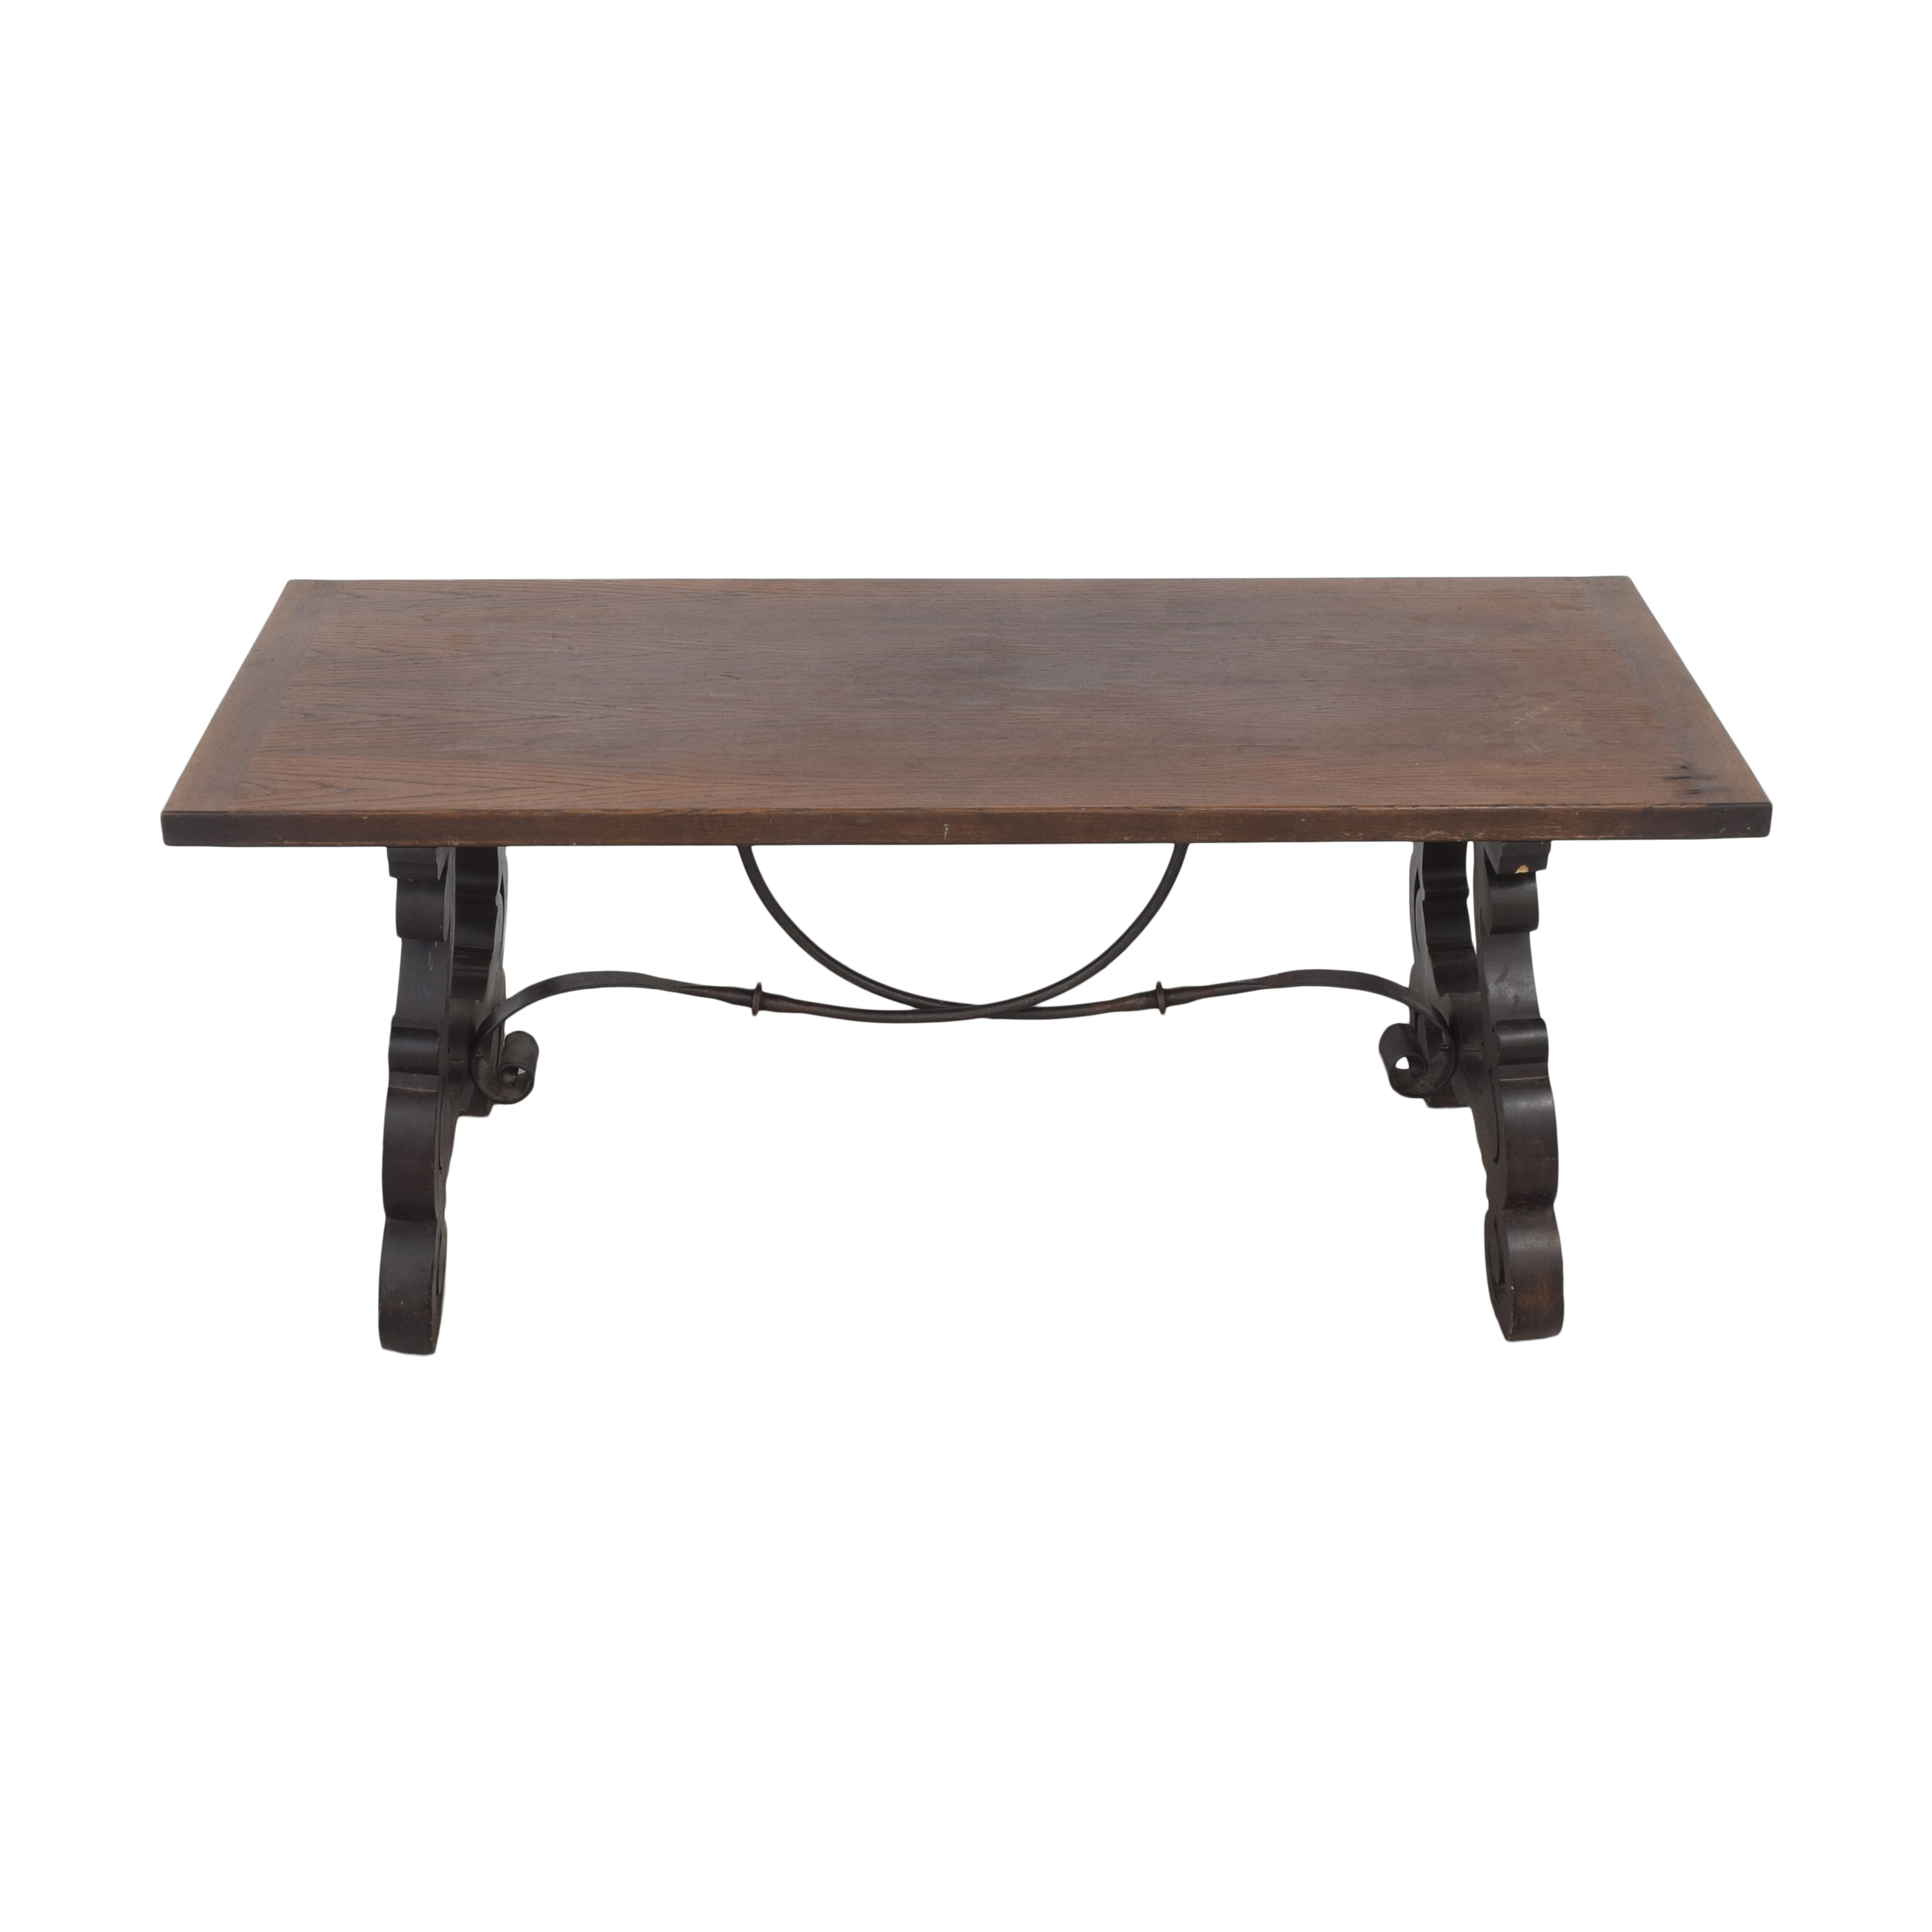 shop ABC Carpet & Home Dining Table ABC Carpet & Home